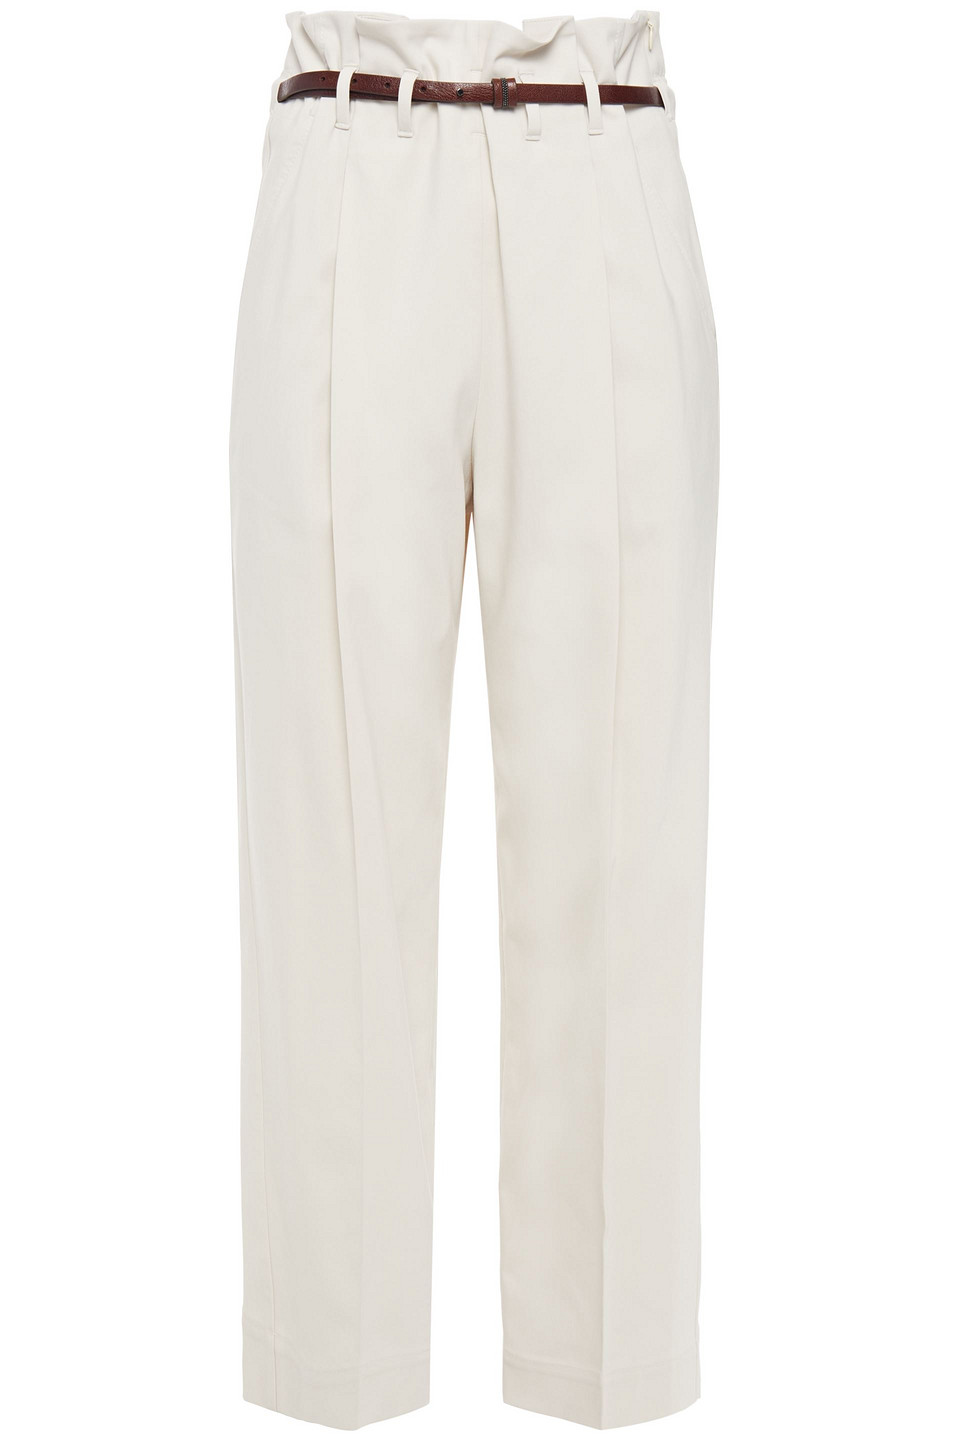 Brunello Cucinelli | Brunello Cucinelli Woman Cropped Belted Cotton-blend Twill Straight-leg Pants Cream | Clouty